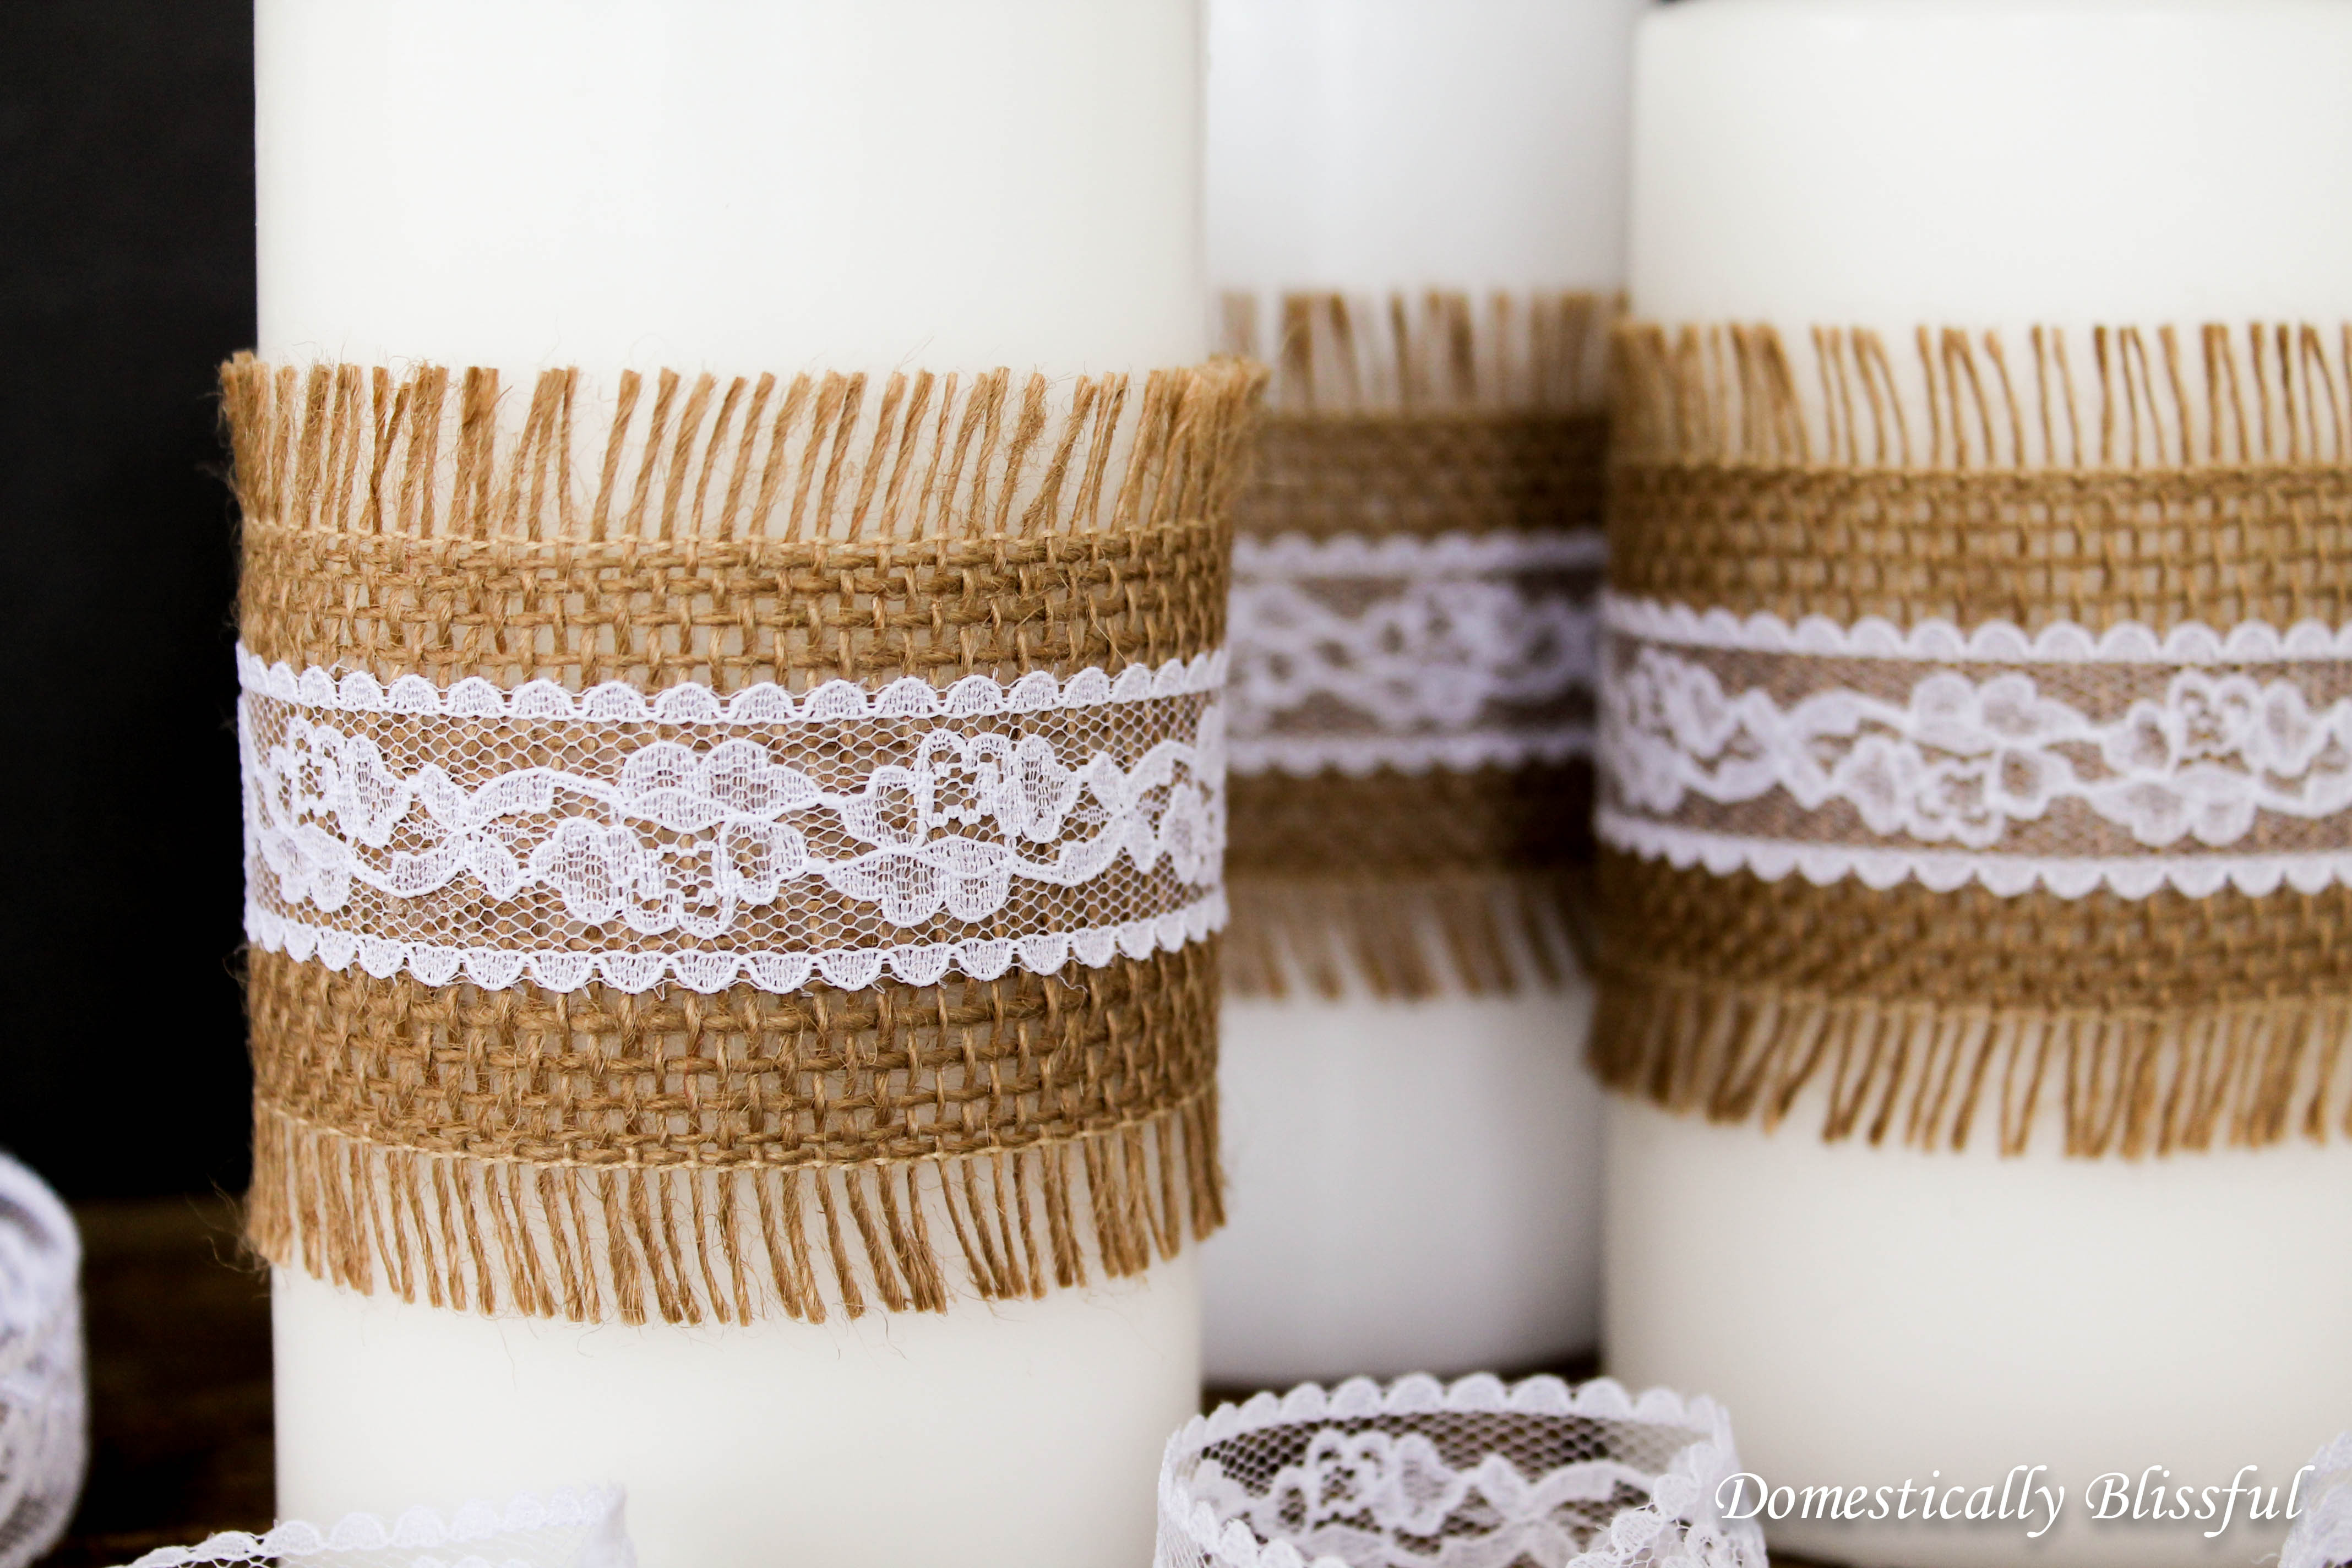 DIY with Burlap and Lace